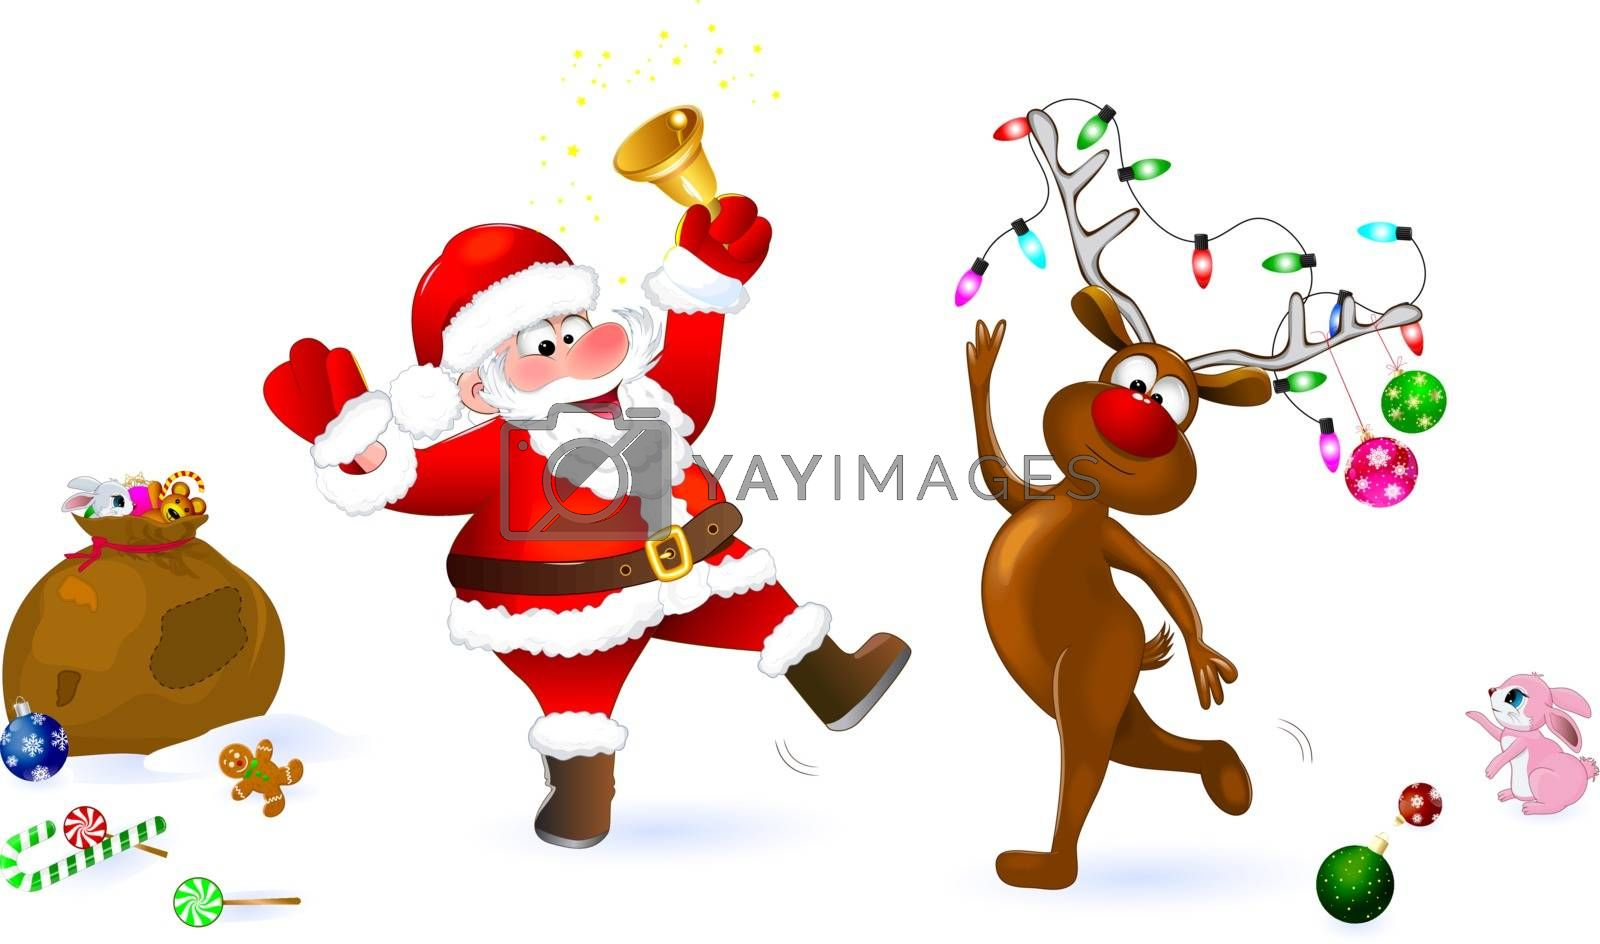 Joyful Santa and deer on a white background. Santa rings the bell. Deer is decorated with Christmas balls and a garland.